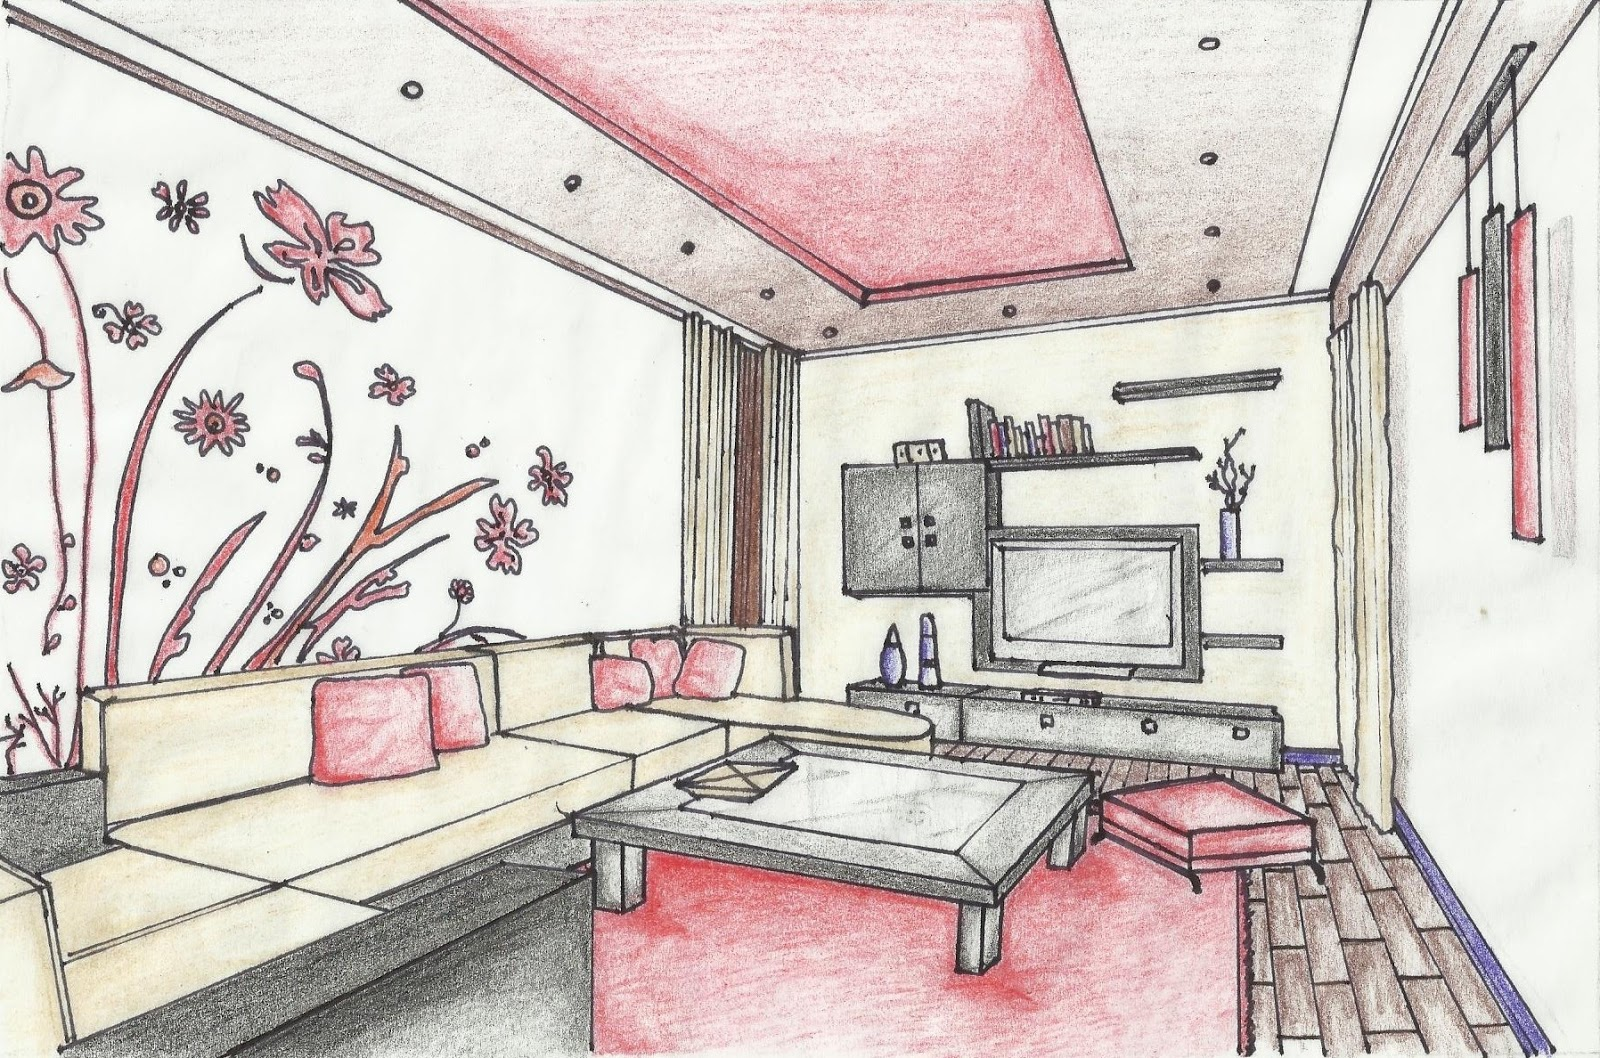 Manchester school of architecture portfolio sketches Room sketches interior design